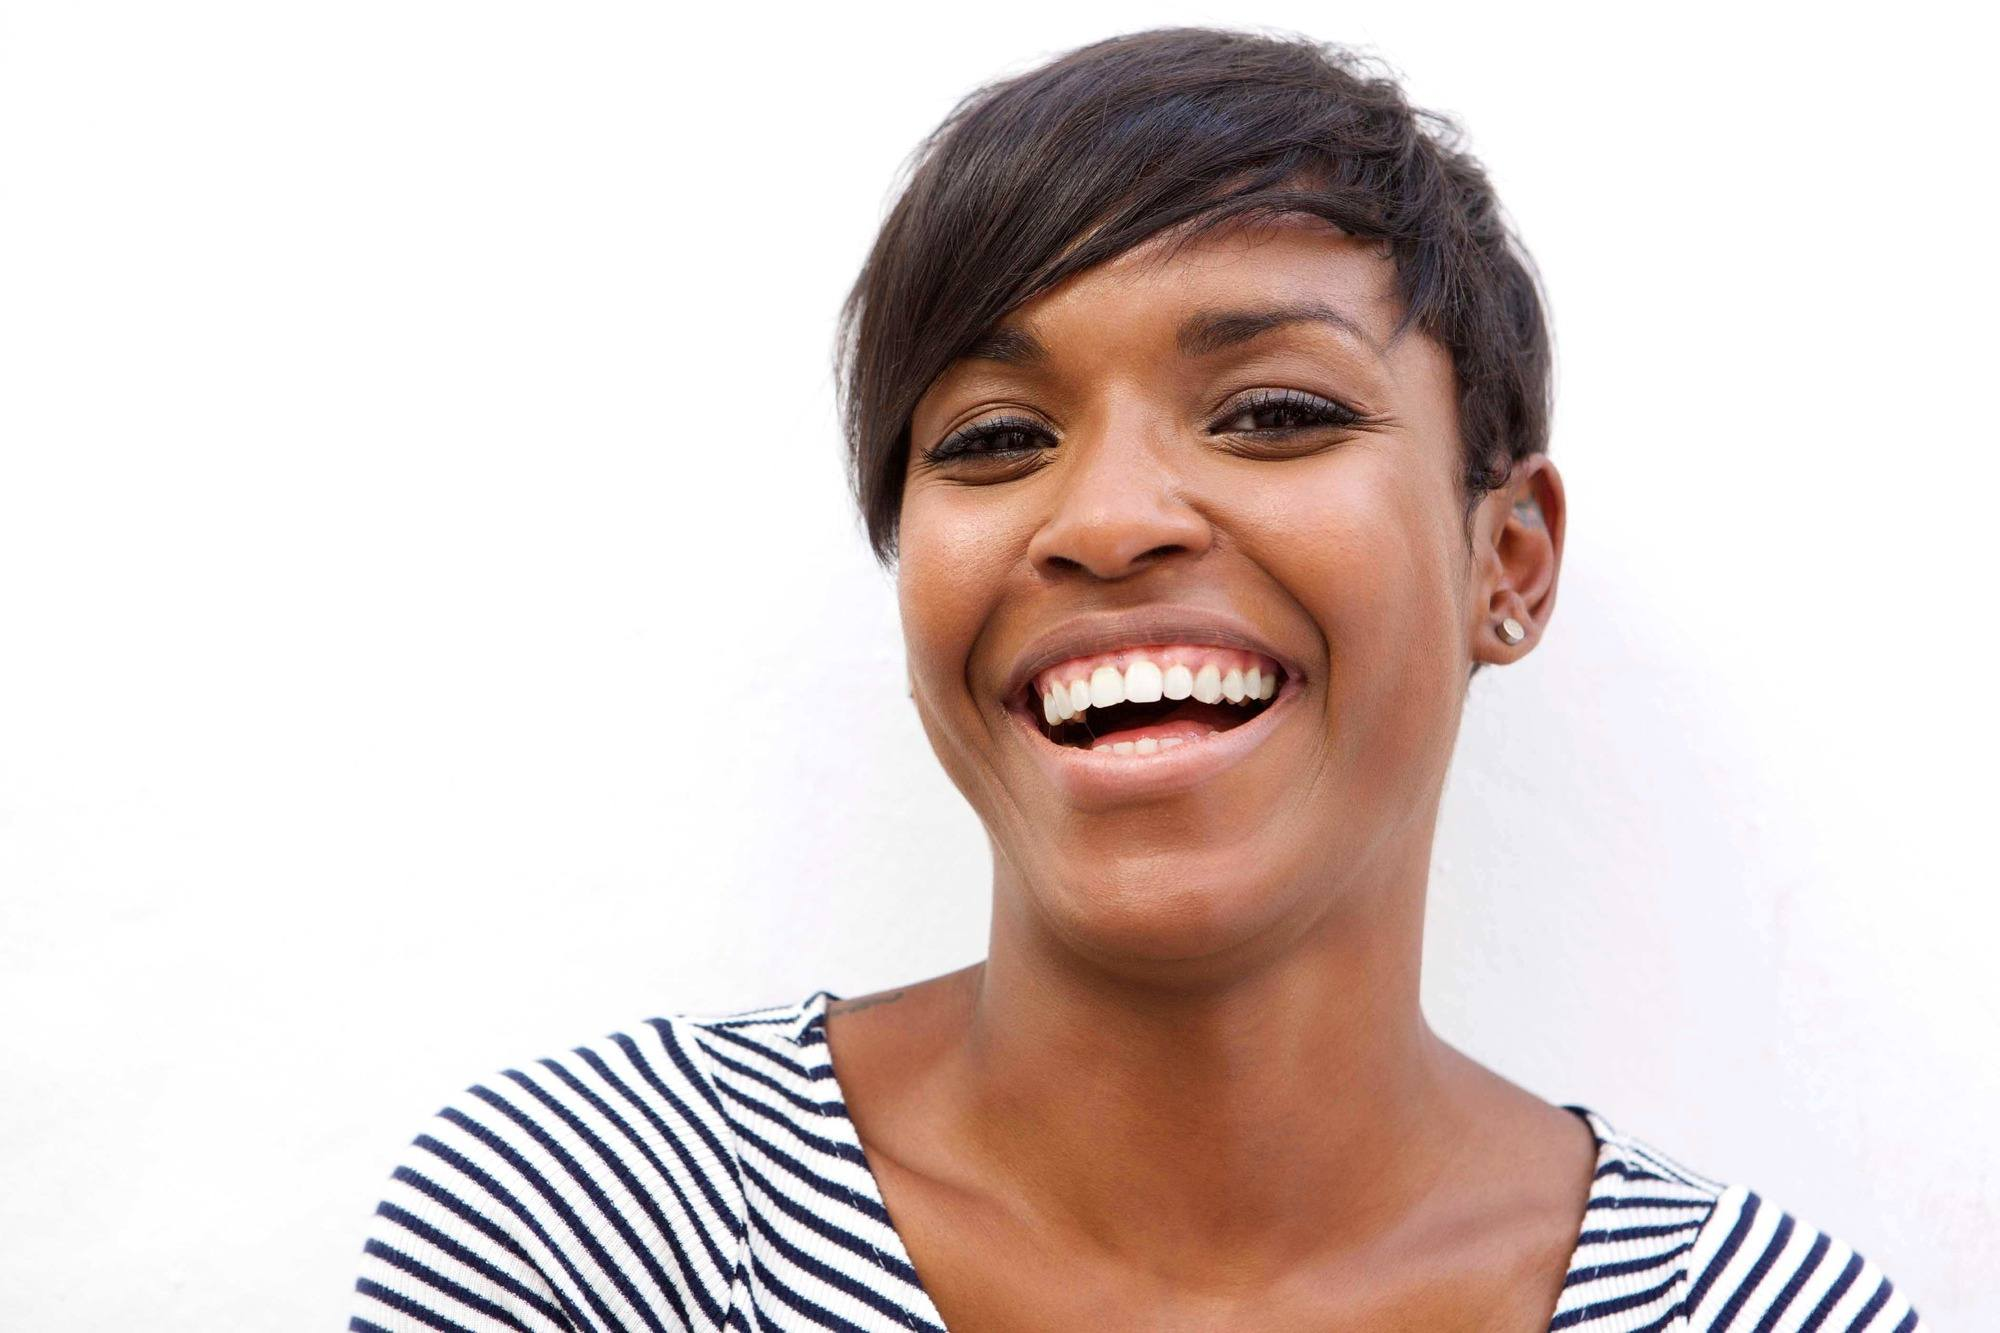 relaxed hair health: short pixie